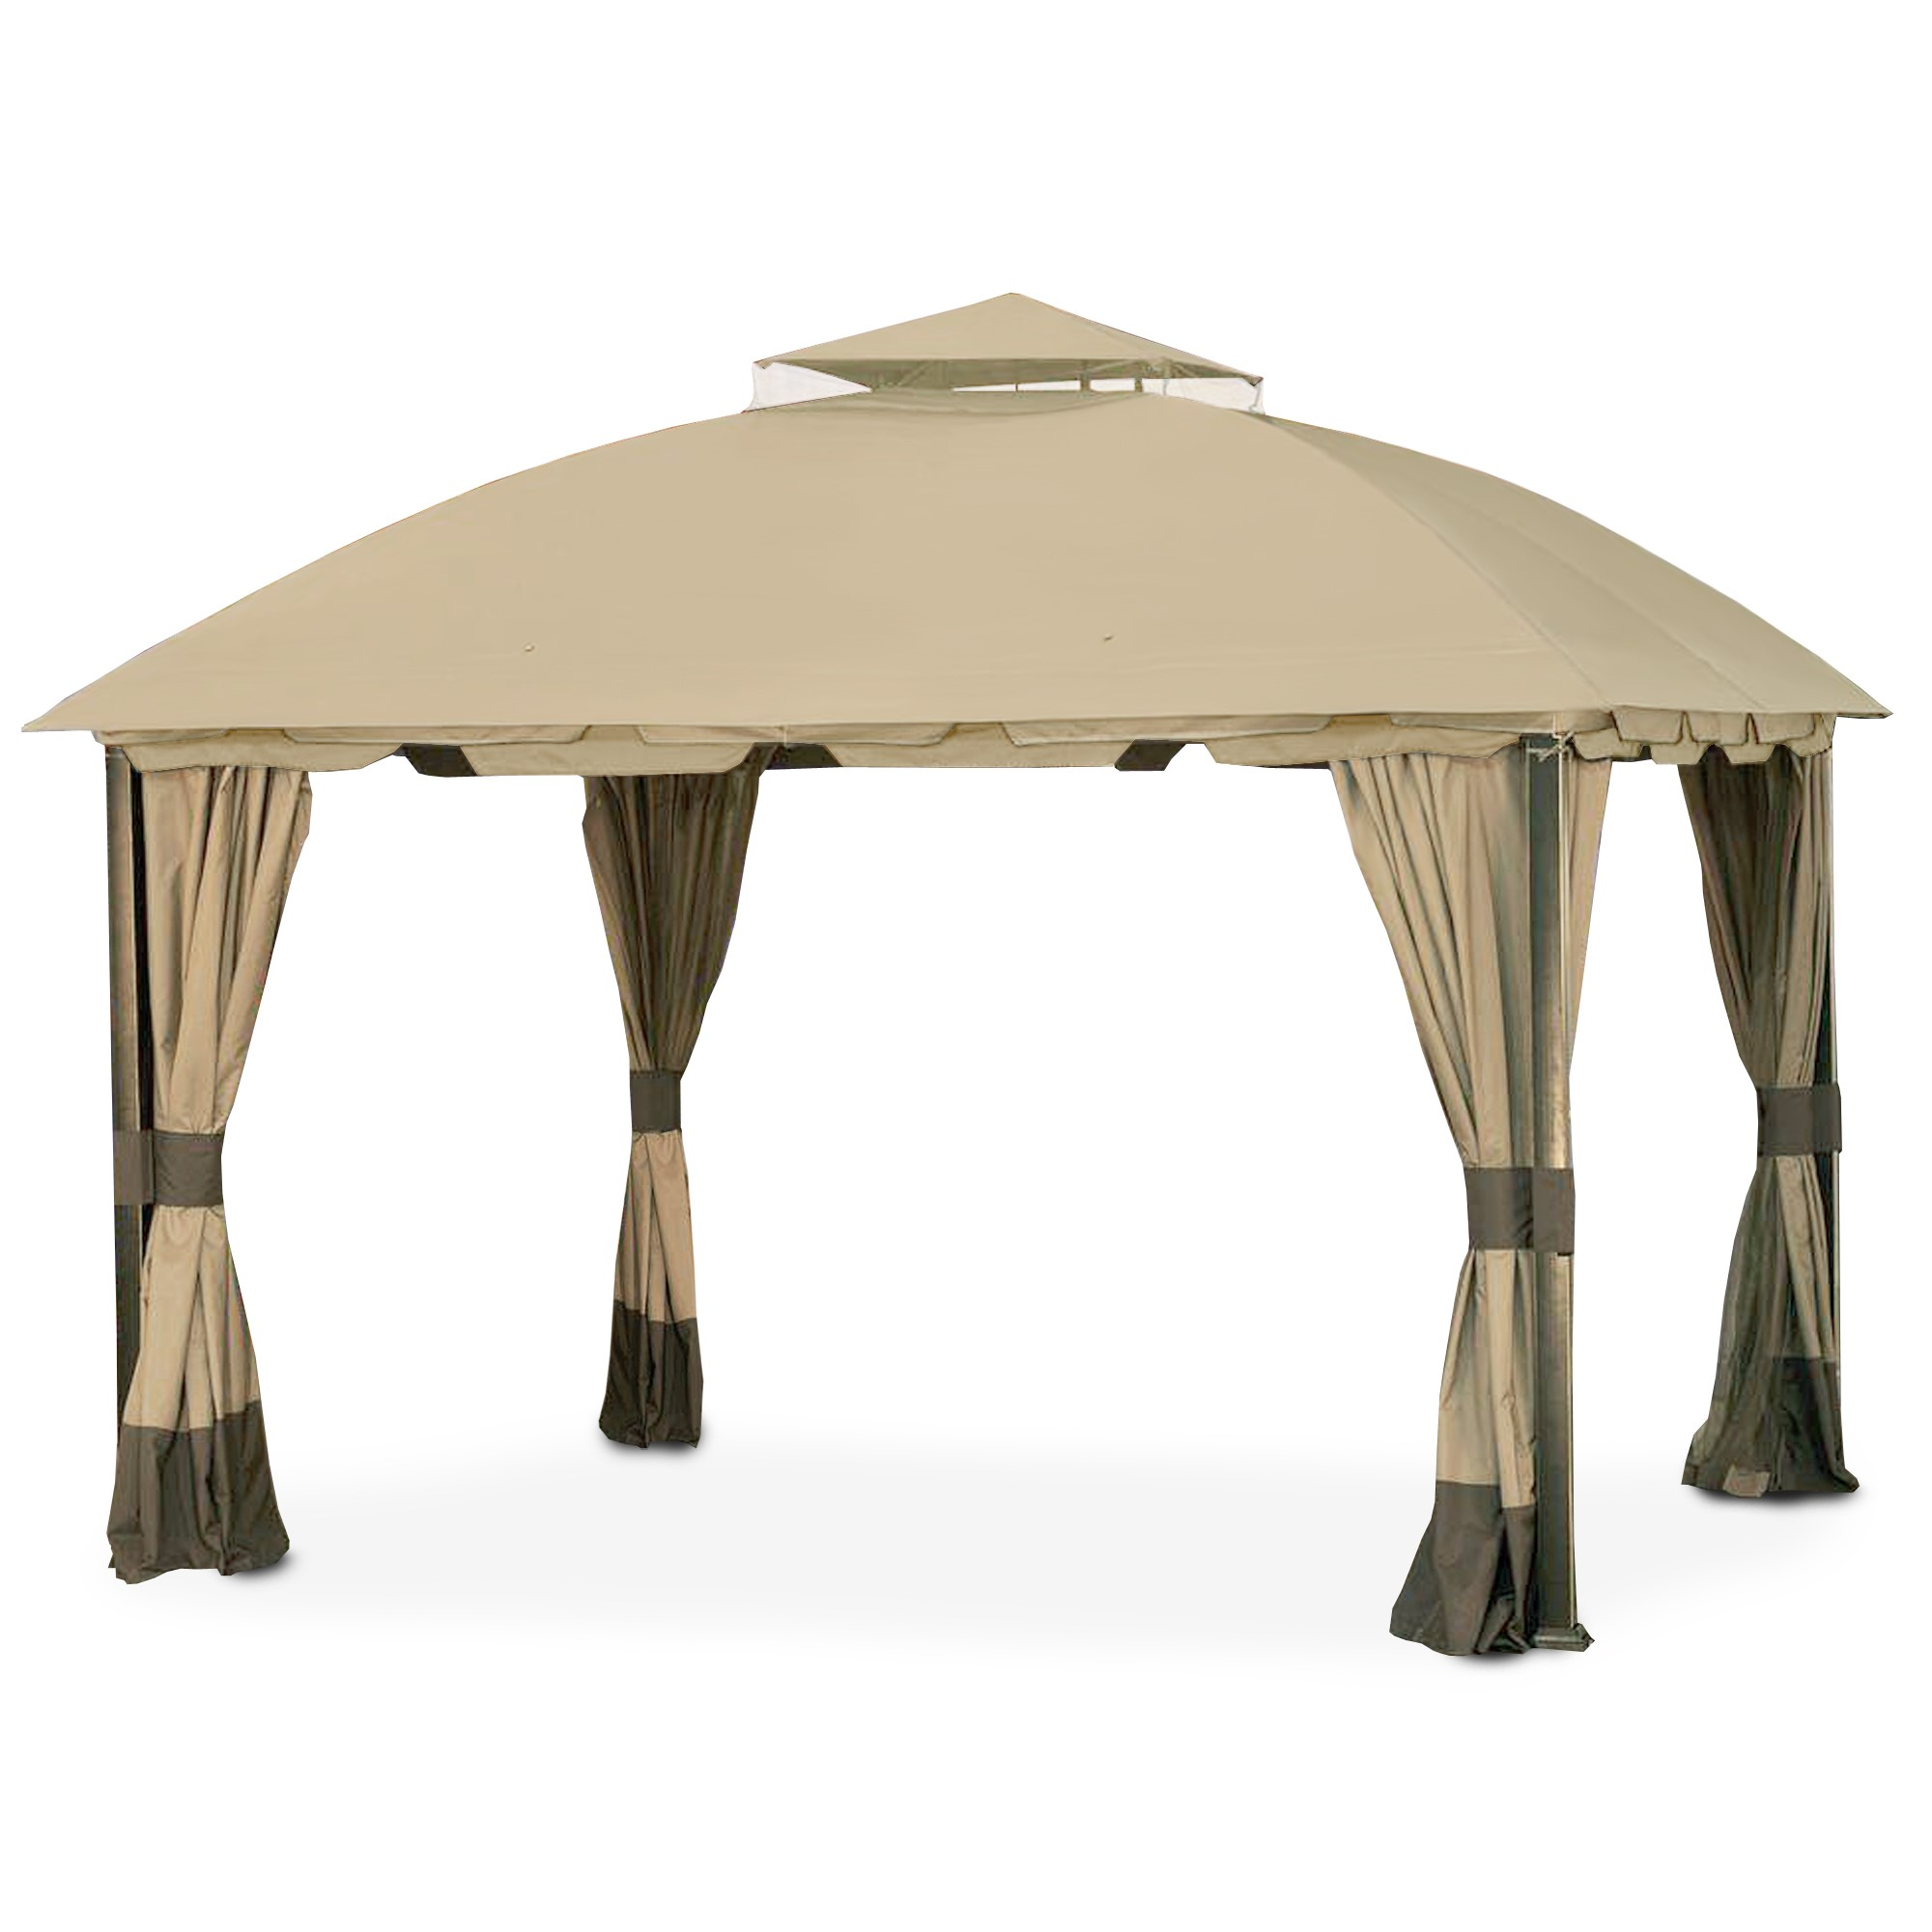 Replacement Canopy For South Hampton Gazebo 350 RipLock